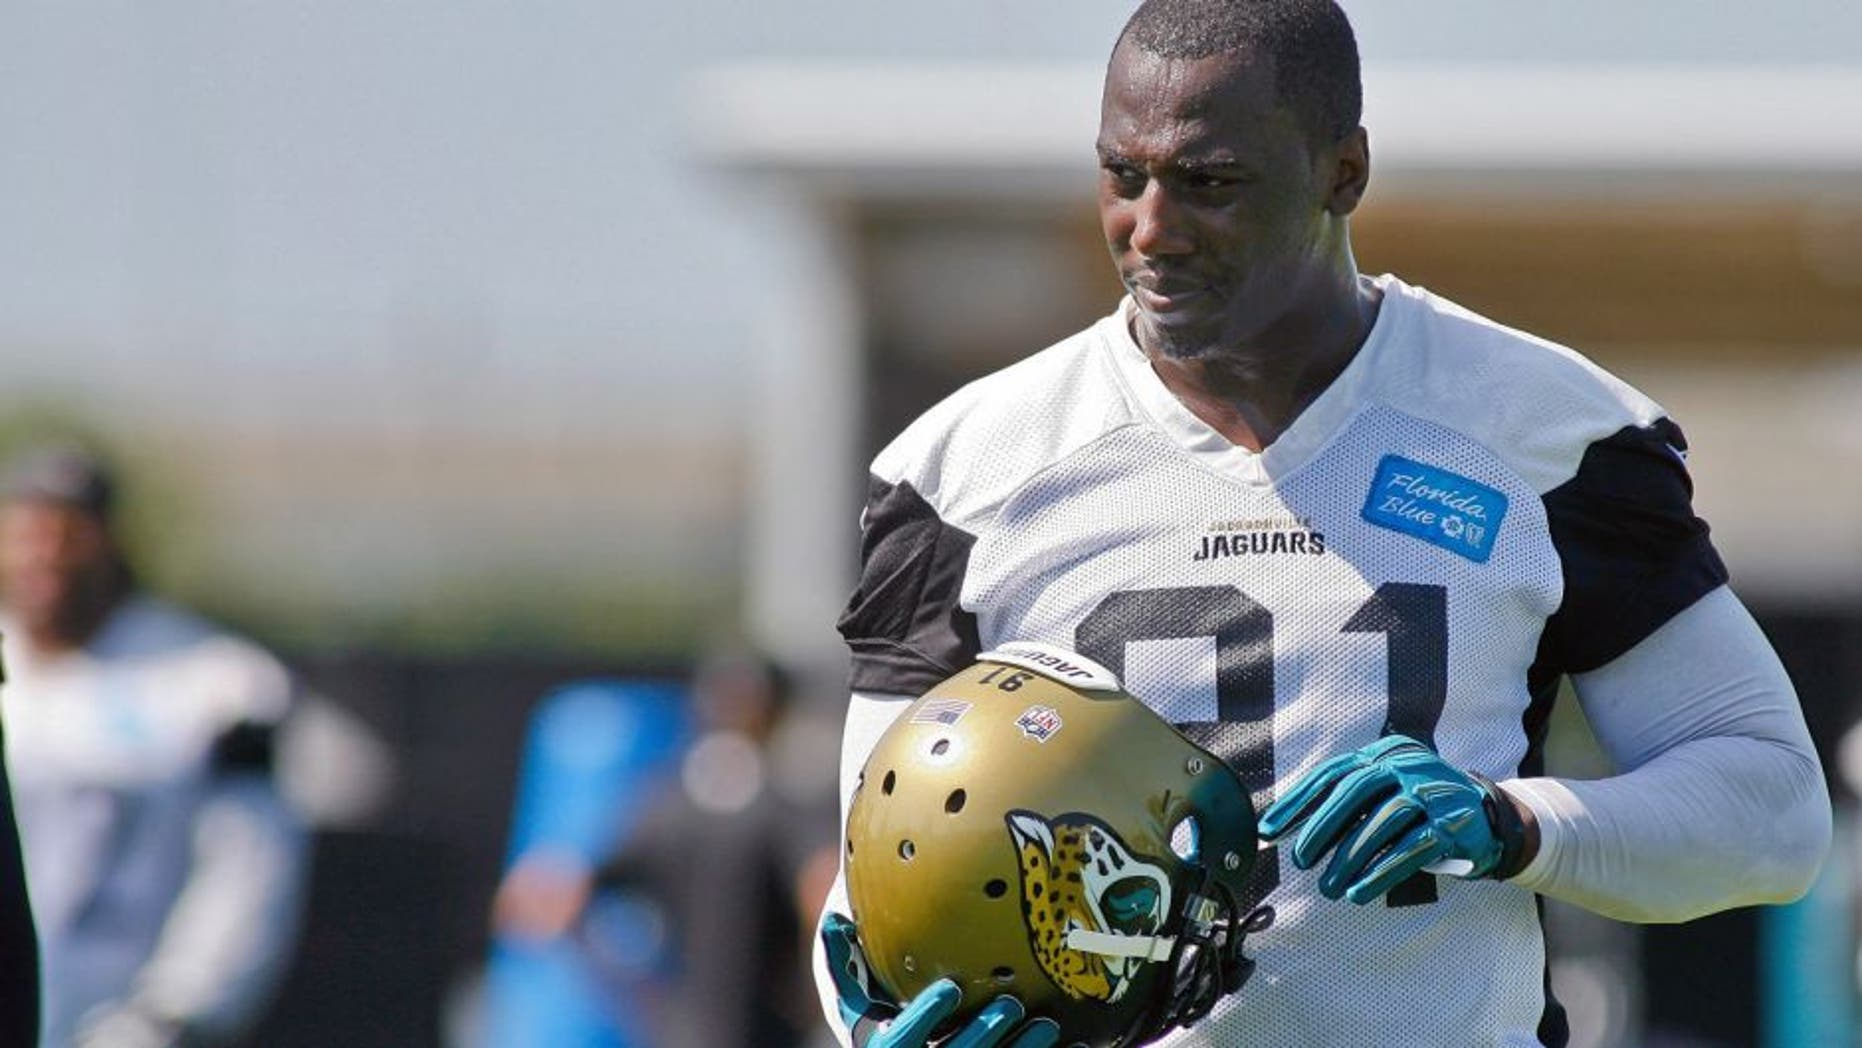 Jun 16, 2015; Jacksonville, FL, USA; Jacksonville Jaguars defensive end Chris Clemons (91) during minicamp at the Florida Blue Health and Wellness Practice Fields. Mandatory Credit: Phil Sears-USA TODAY Sports